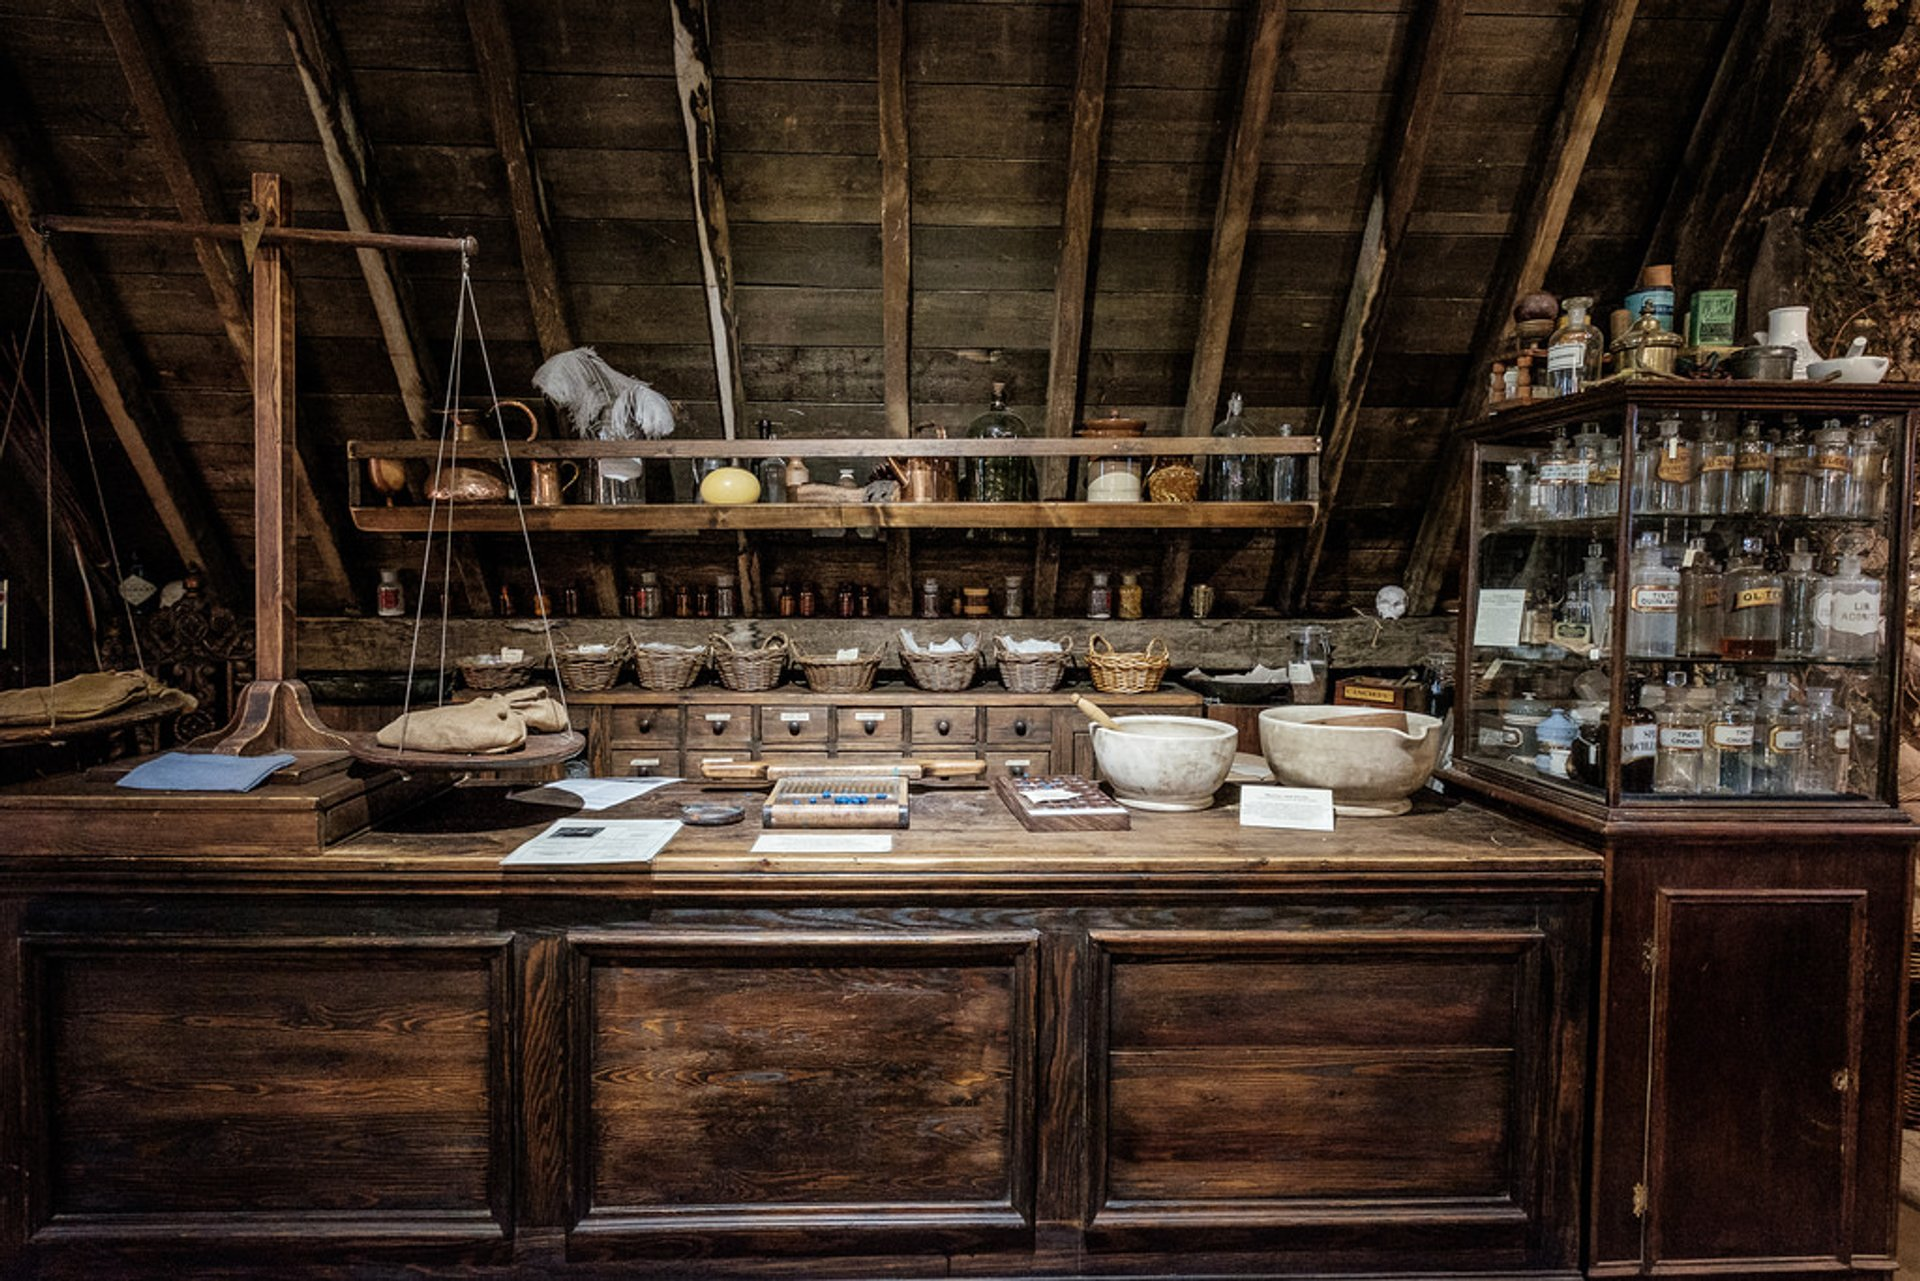 Best time to see Old Operating Theatre  in London